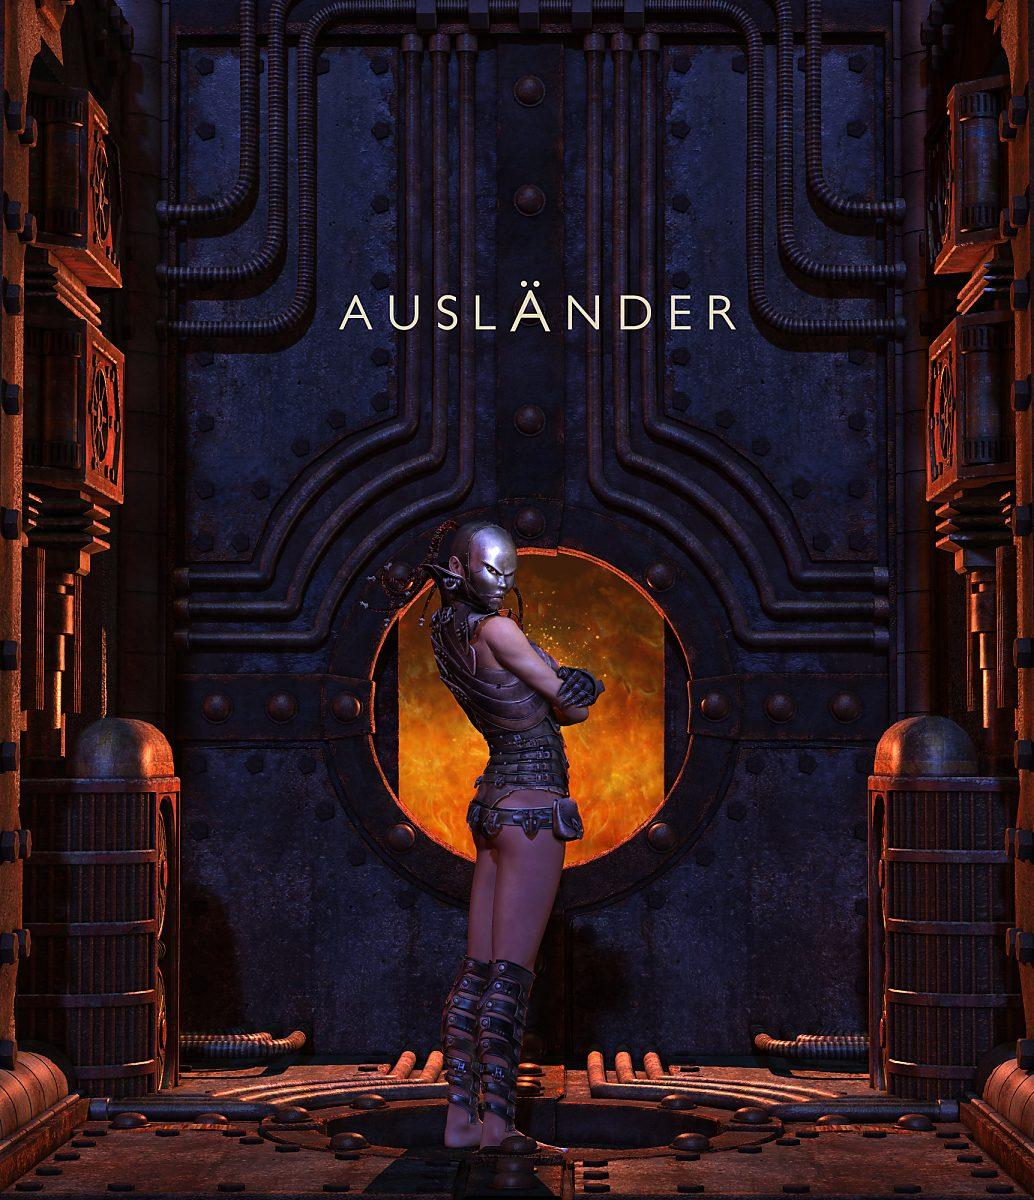 Auslander by Paul Francis